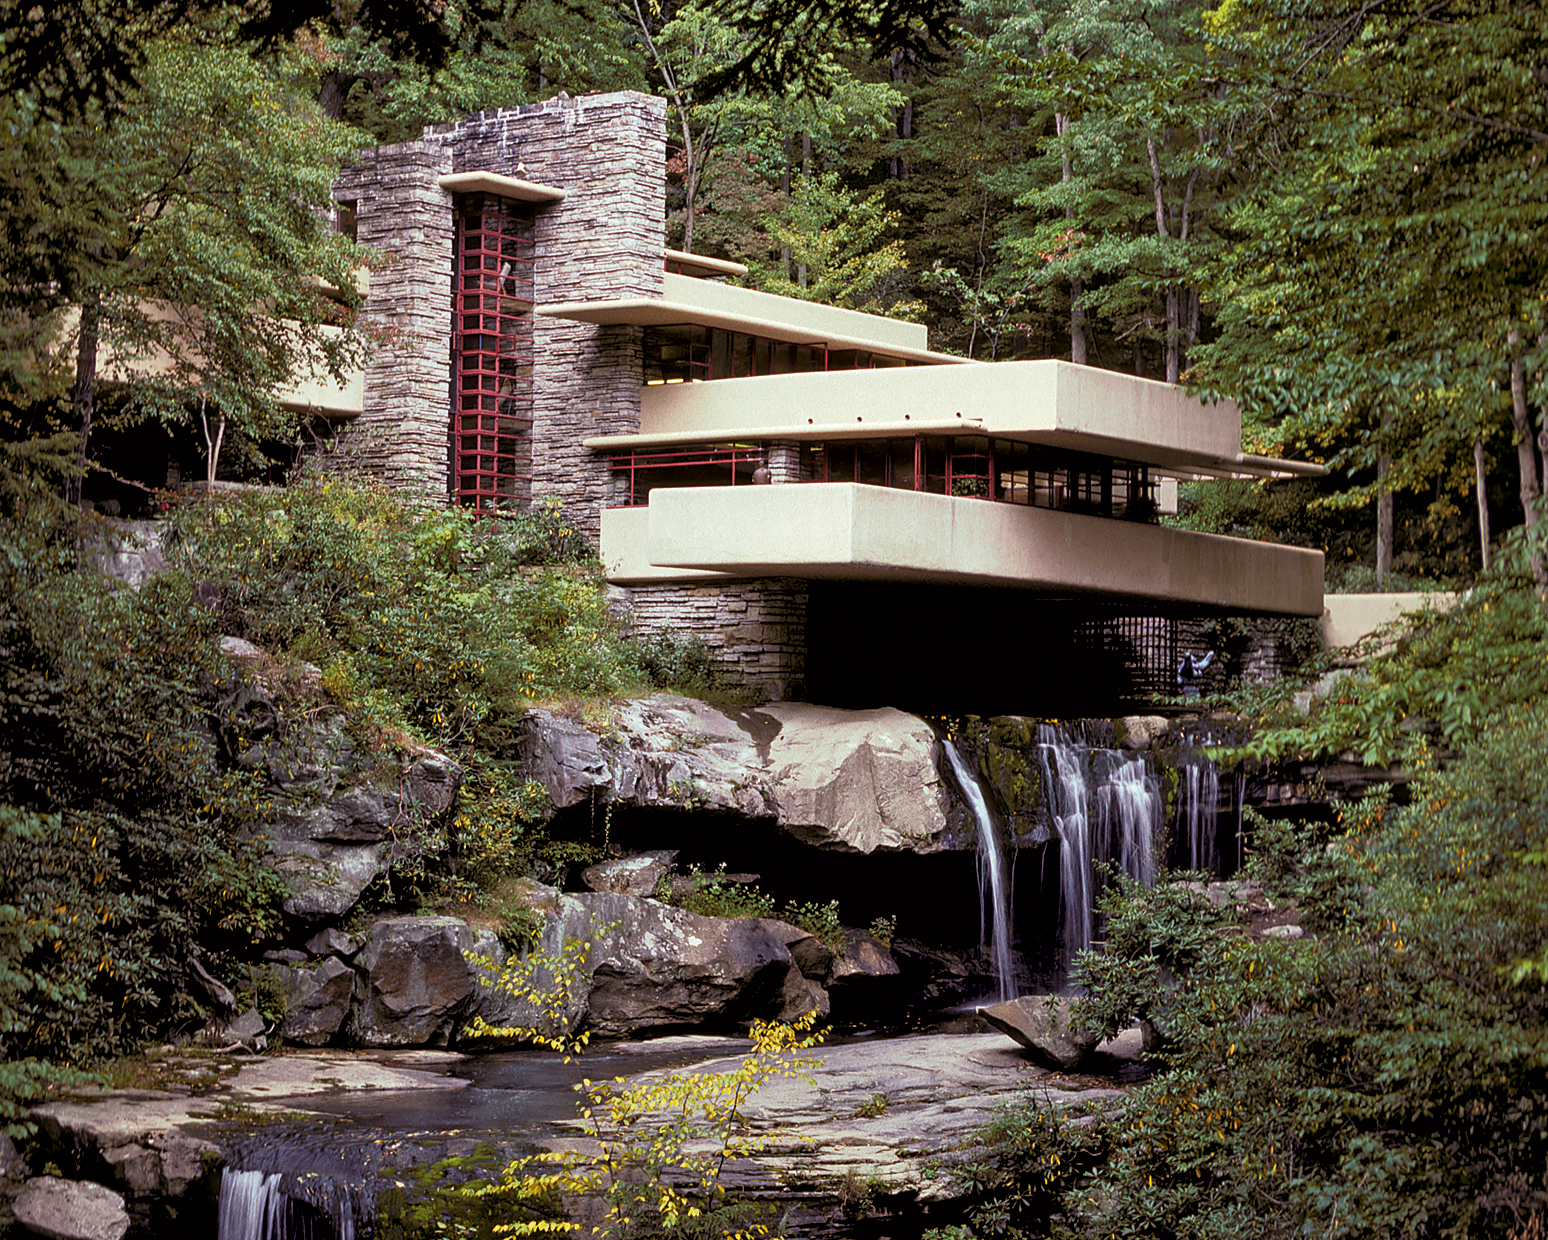 Frank Lloyd Wright S Fallingwater Is Just One Attraction In The Laurel Highlands Photograph By Mike Dobel Alamy